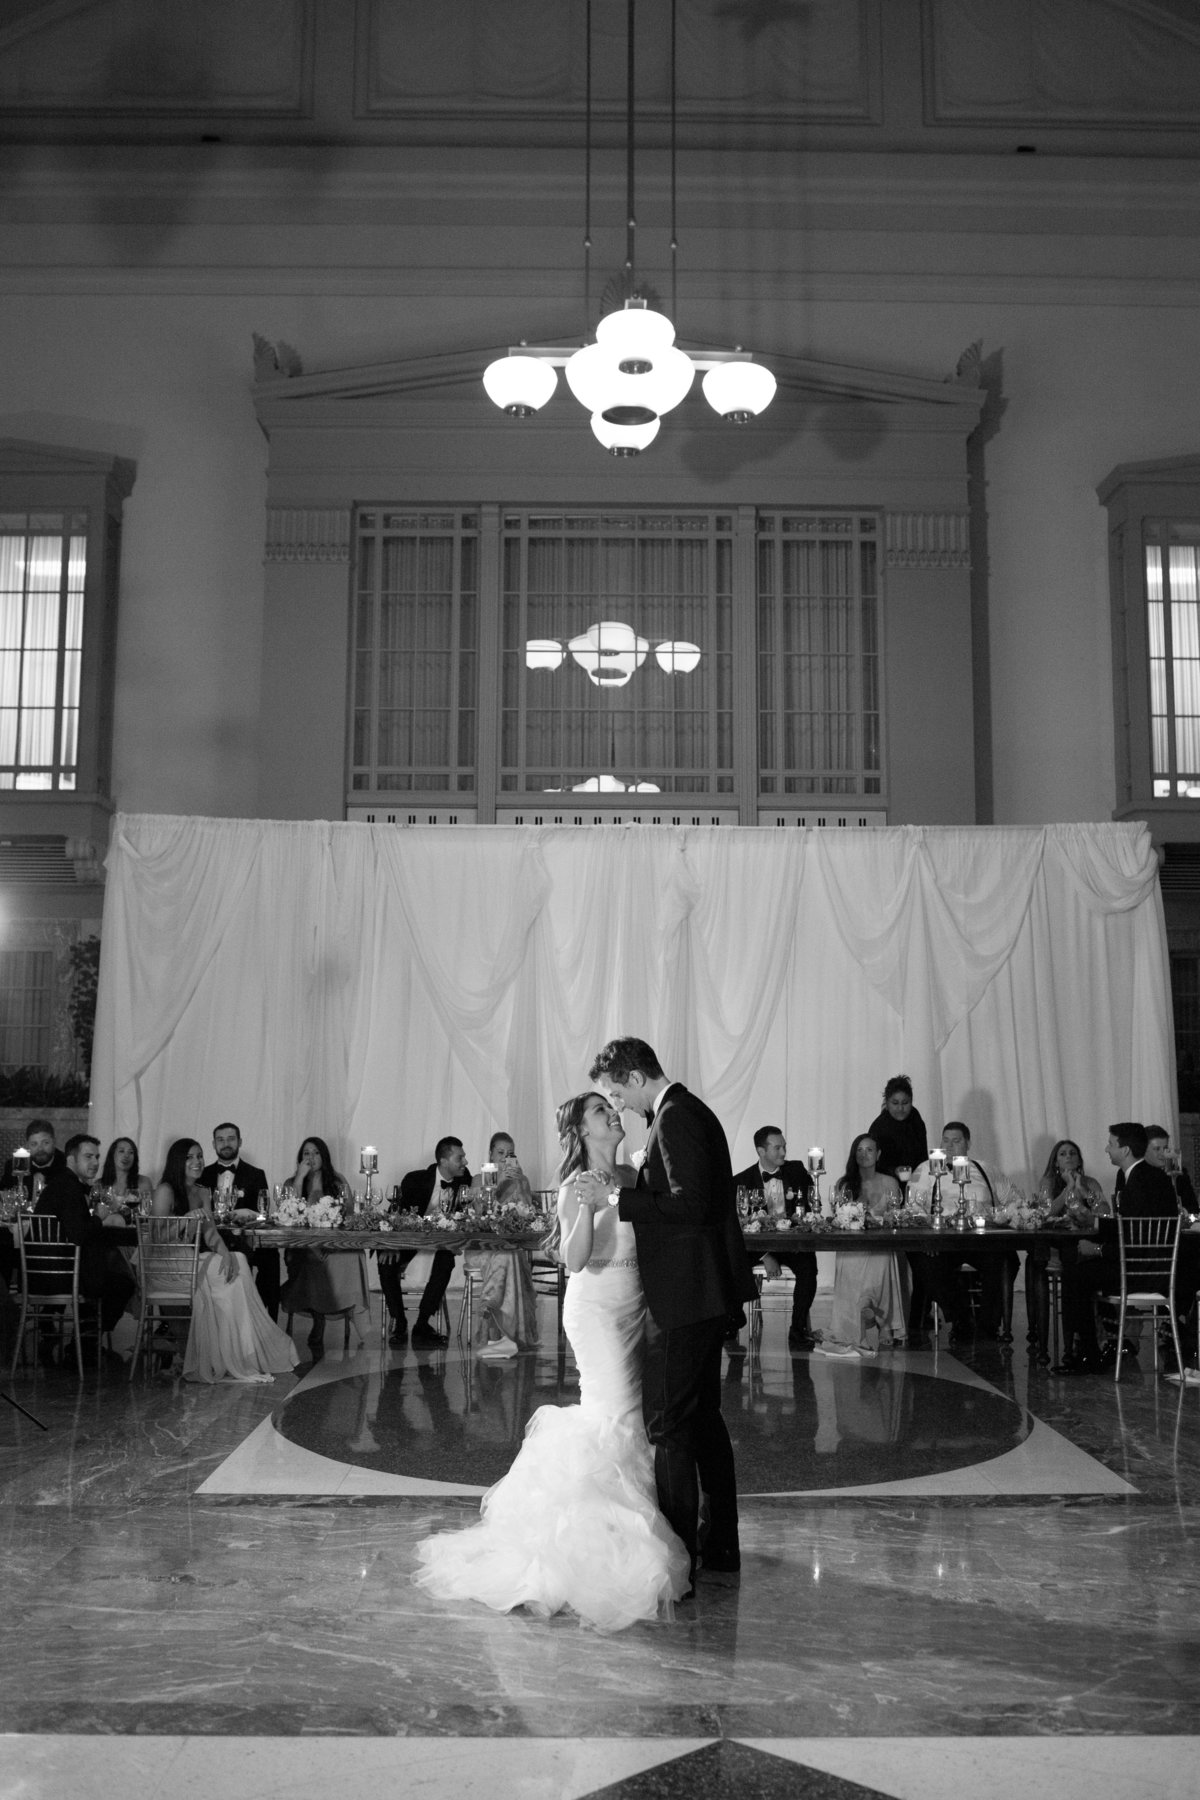 Nicole and Paul Wedding - Natalie Probst Photography 760